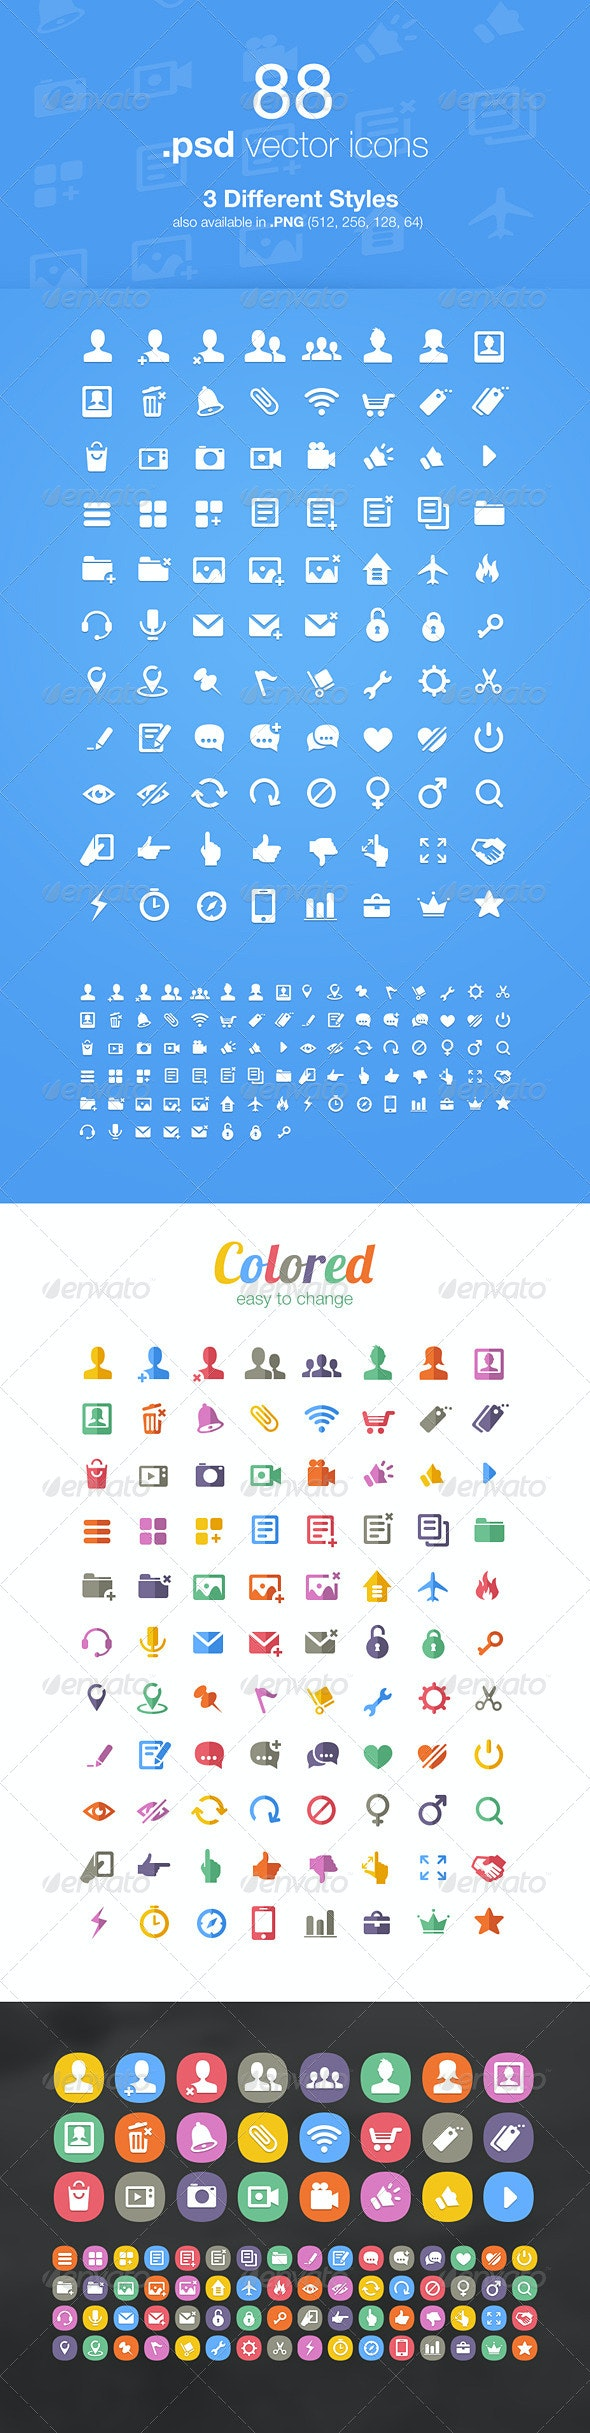 88 Modern Vector Icons - Web Icons